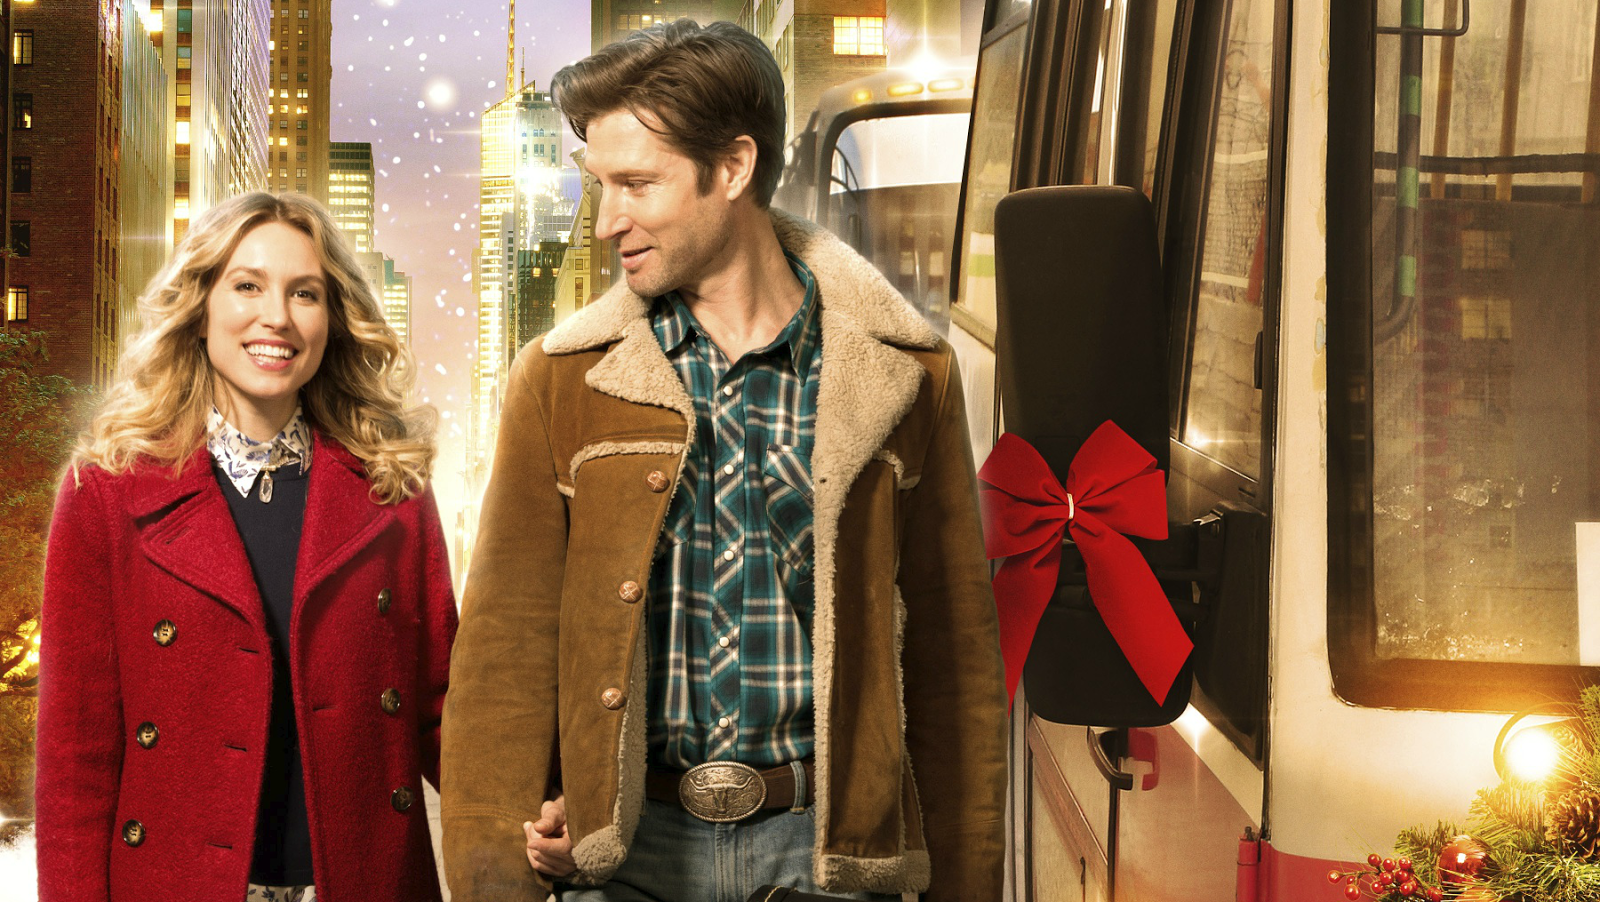 Promotional Art for the Hallmark Channel Movie - One Starry Christmas